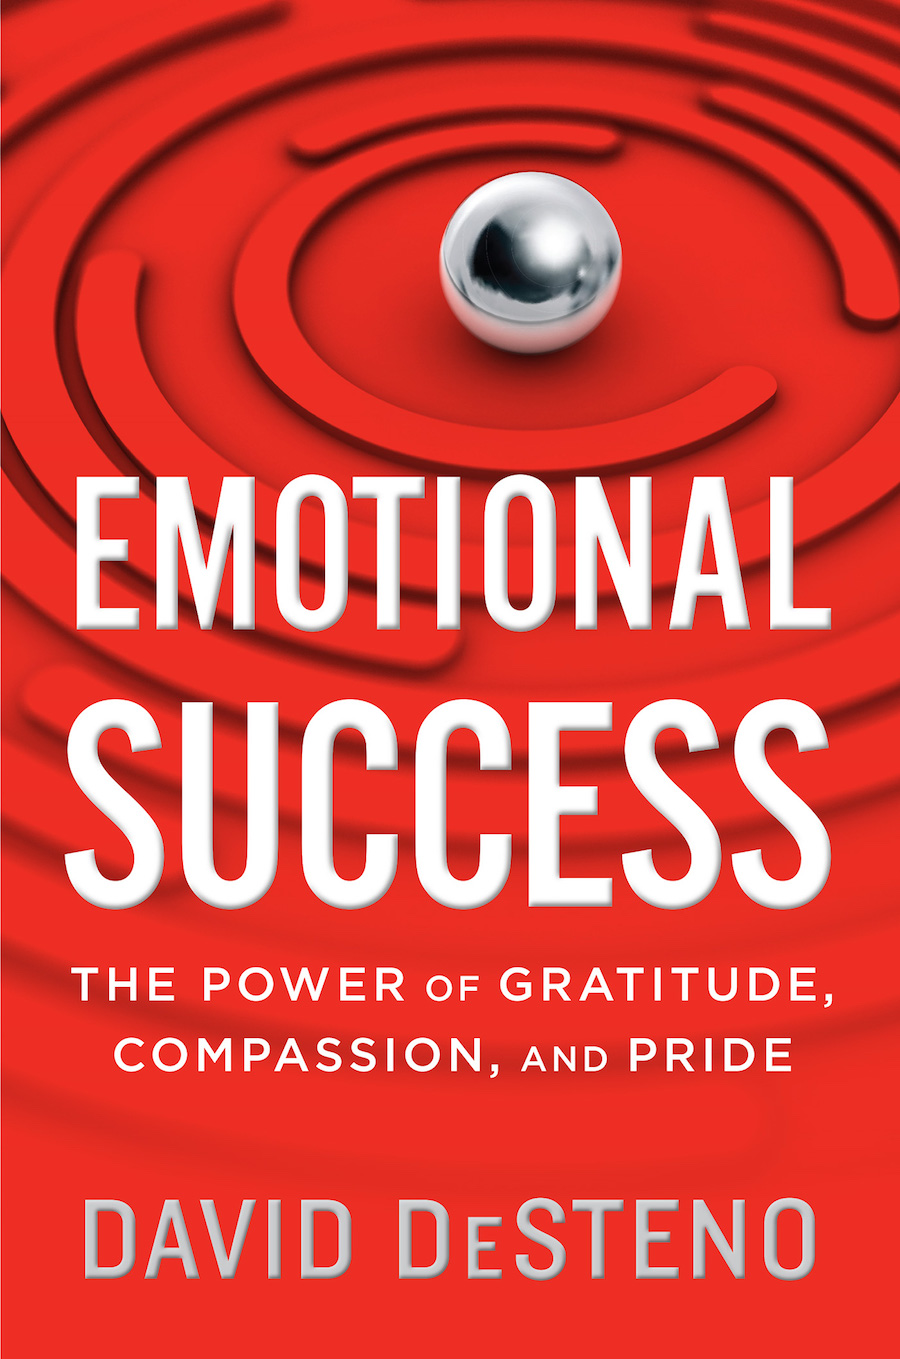 emotional-success-cover.jpg